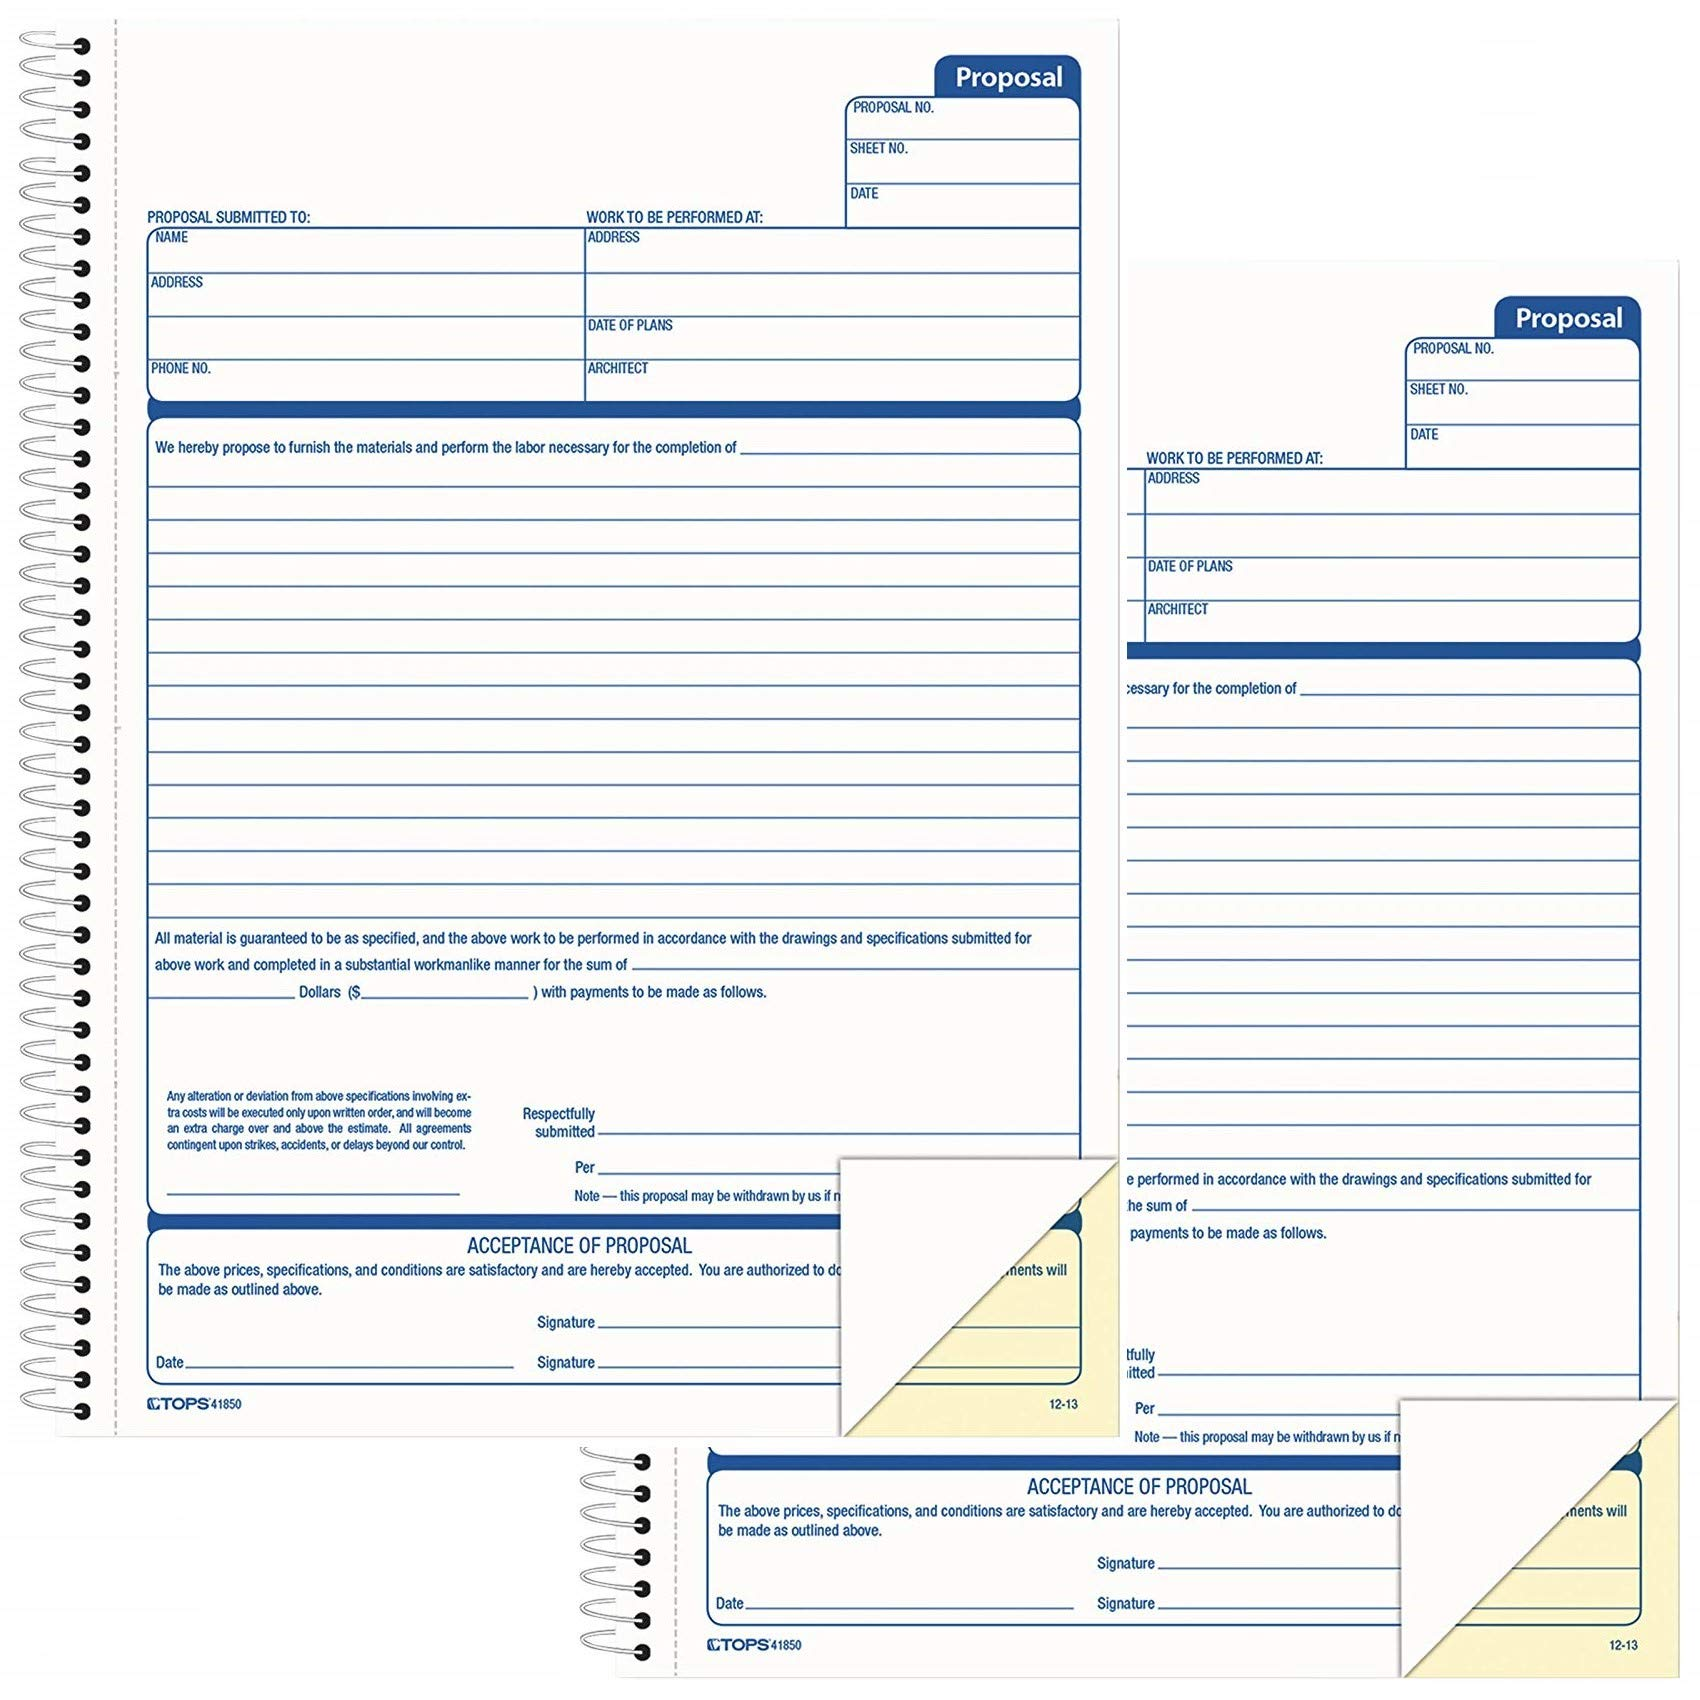 Tops 41850 Spiralbound Proposal Form Book, 8 1/2 x 11, Two-Part Carbonless, 50 Sets/Book, Pack of 2 Books